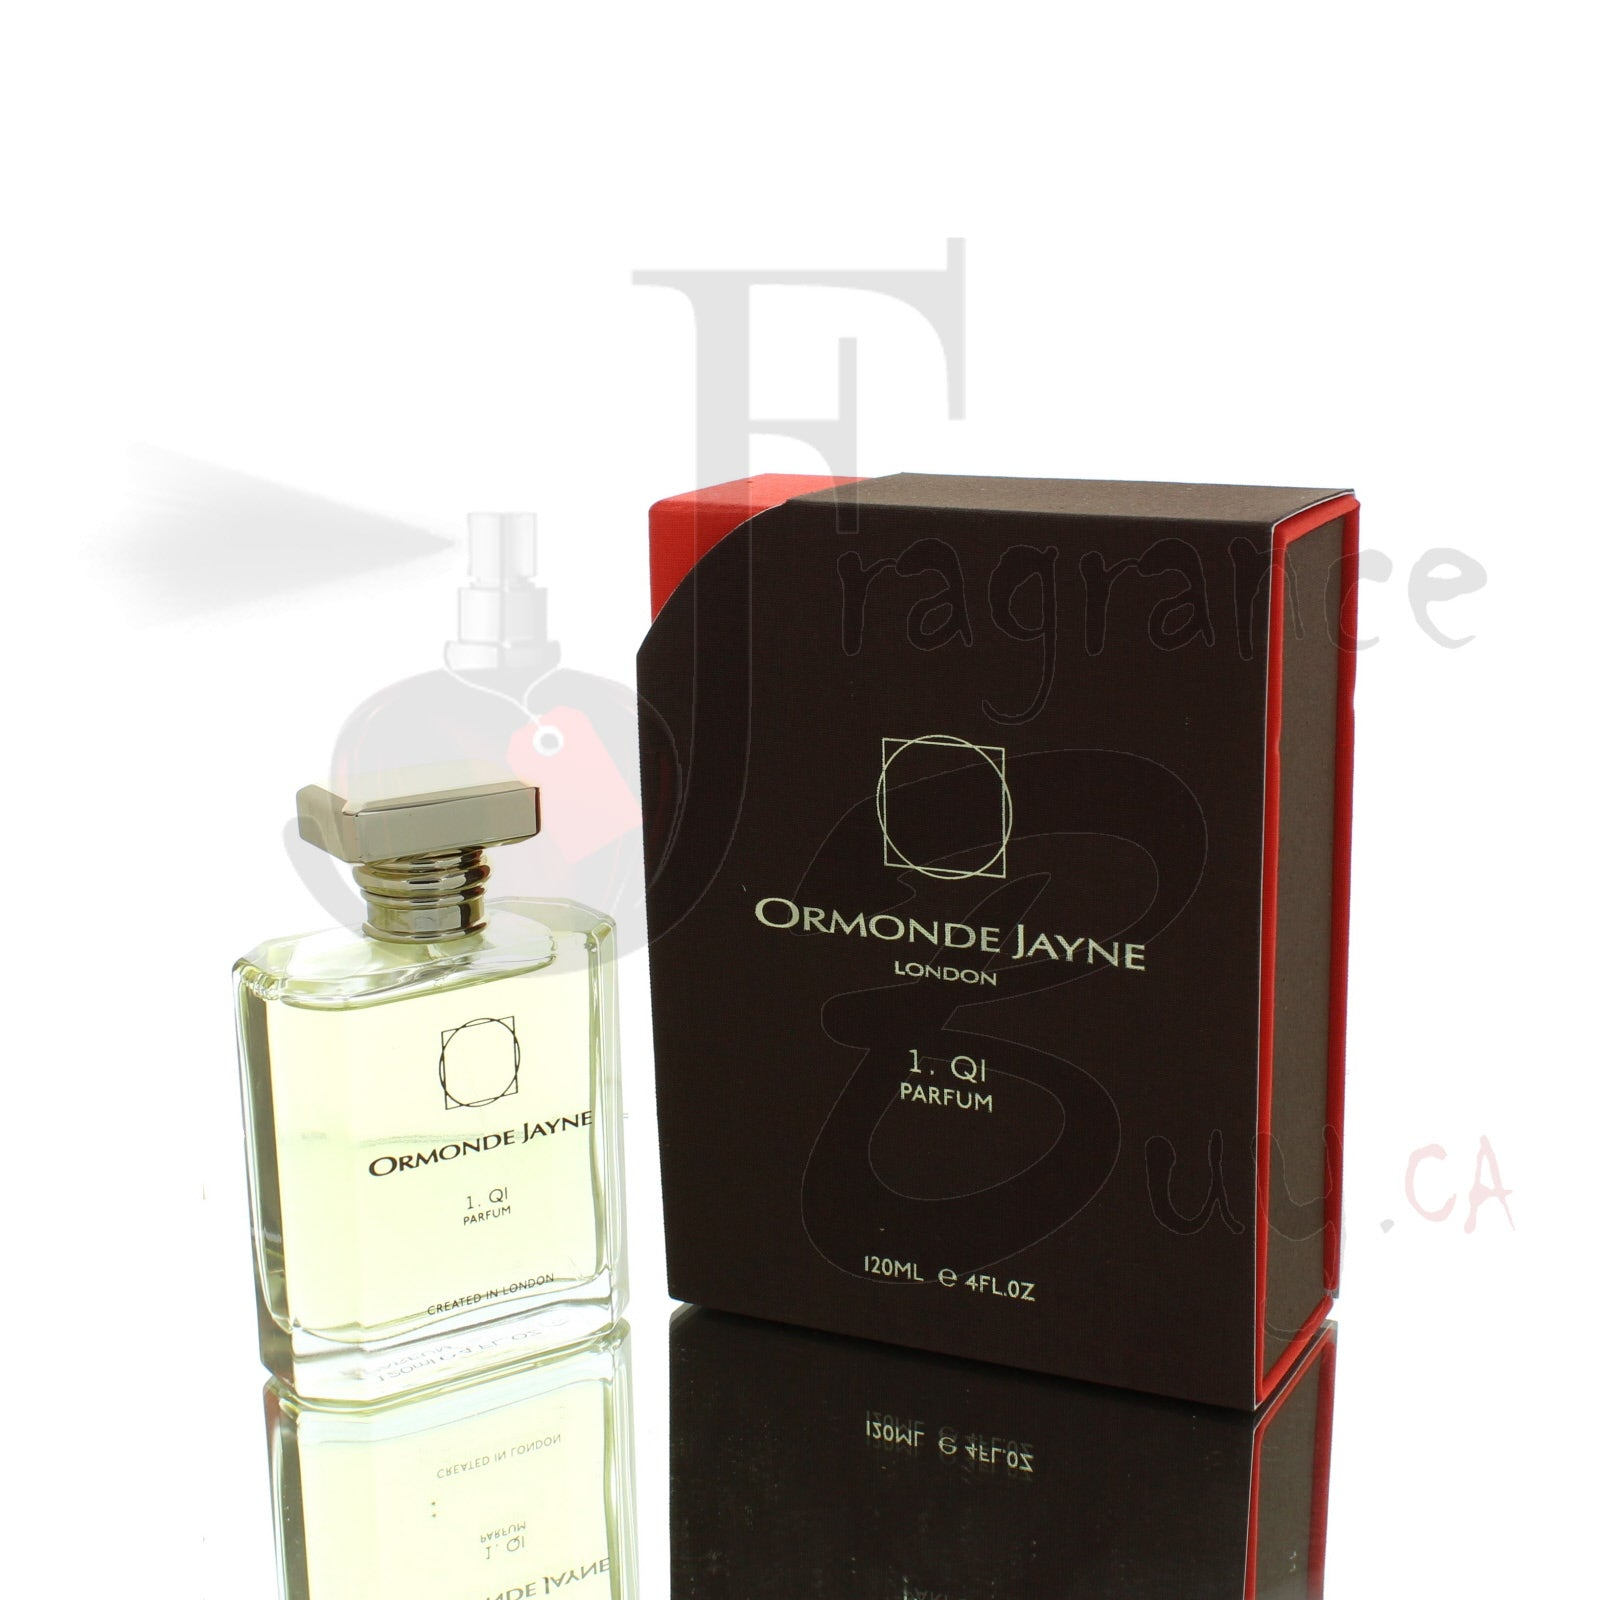 Ormonde Jayne Qi For Man/Woman